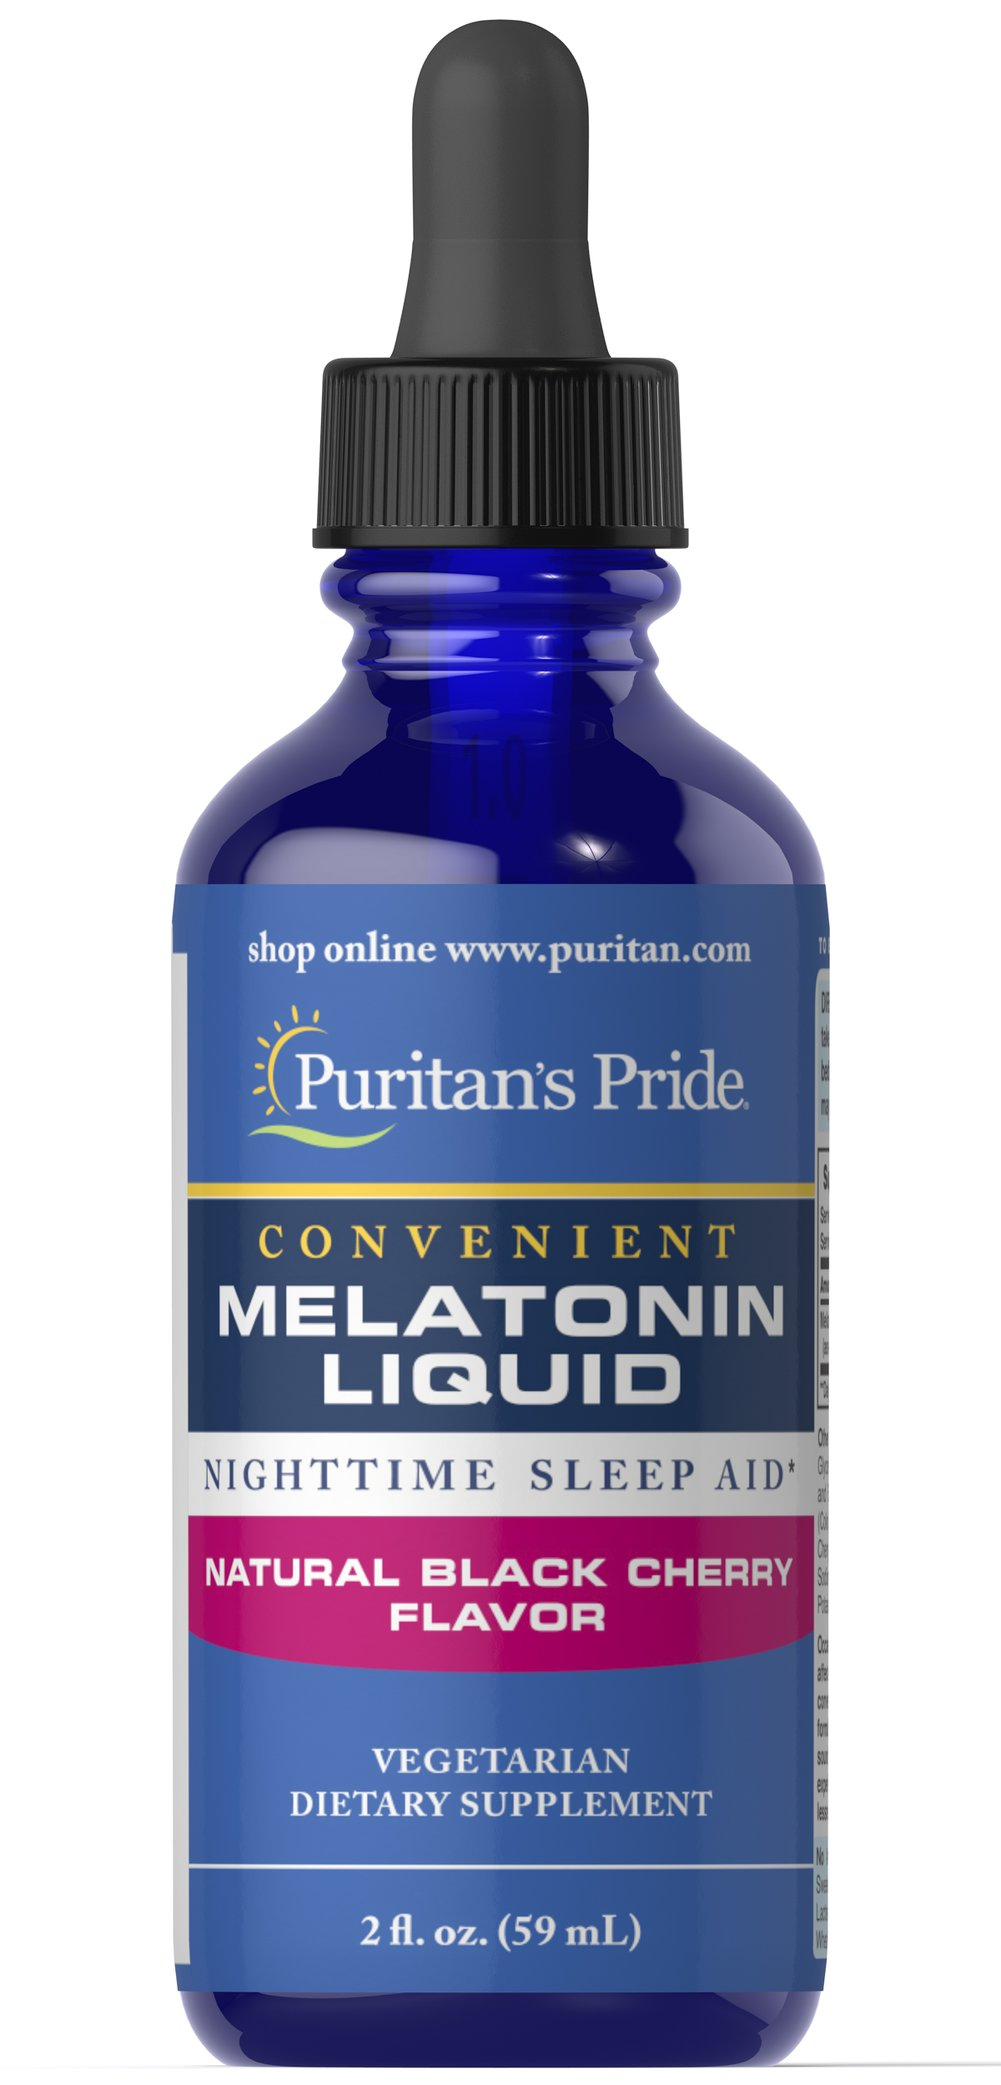 Sublingual Melatonin Cherry 1 mg <p>Sometimes it's hard to unwind after a long day. That's when it's time for Melatonin, a hormone naturally produced in the body that is closely involved in the natural sleep cycle.** It's a terrific choice if you experience occasional sleeplessness or jet lag, or if you want to improve your quality of rest.**  Melatonin helps you fall asleep quickly and stay asleep longer**<br /></p> 2 oz Liquid 1 mg $8.29